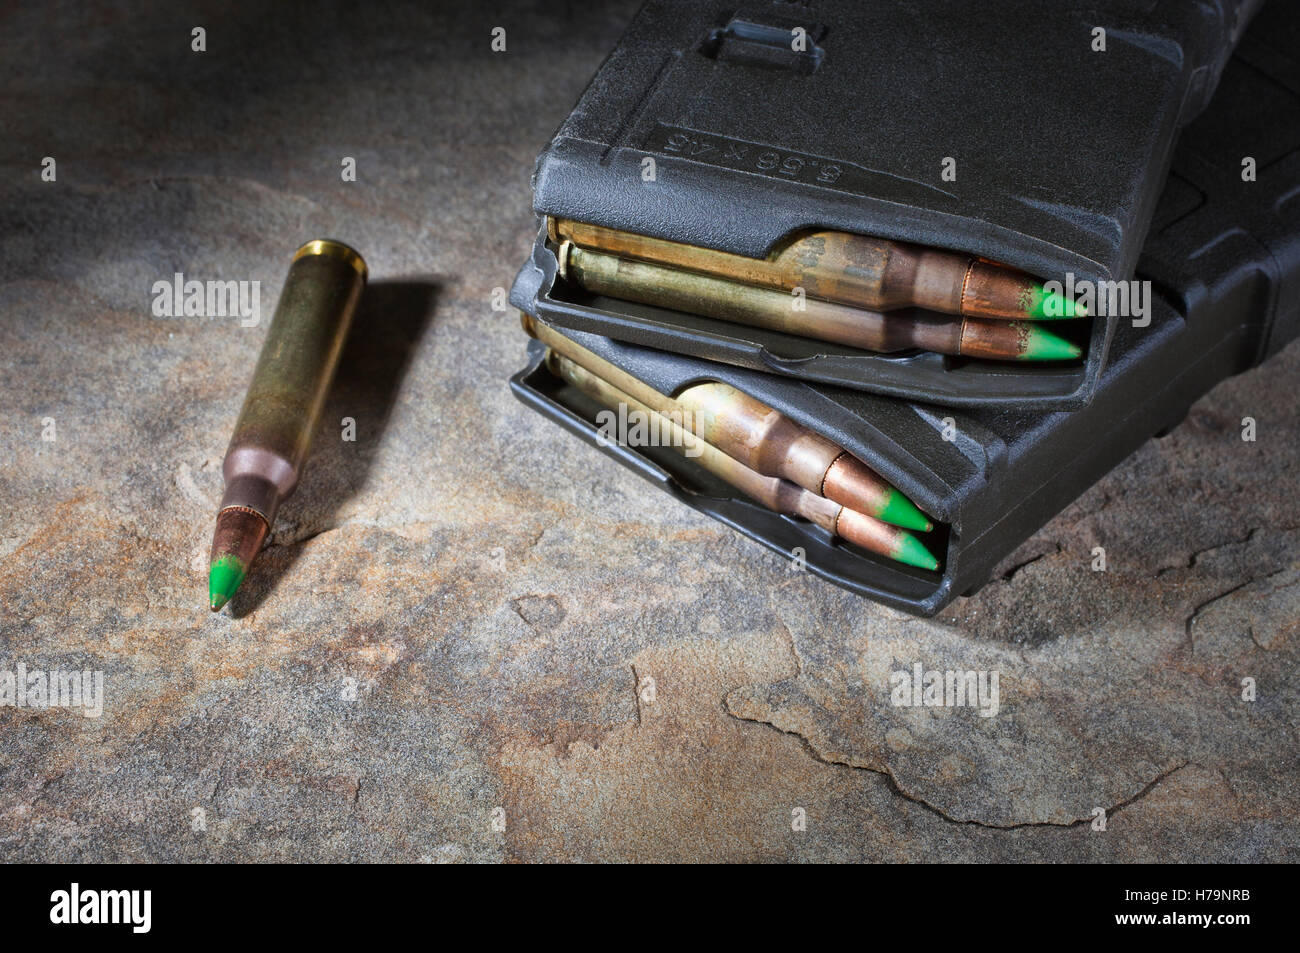 Rifle ammunition and magazines with a green tip and bullets with steel inside Stock Photo